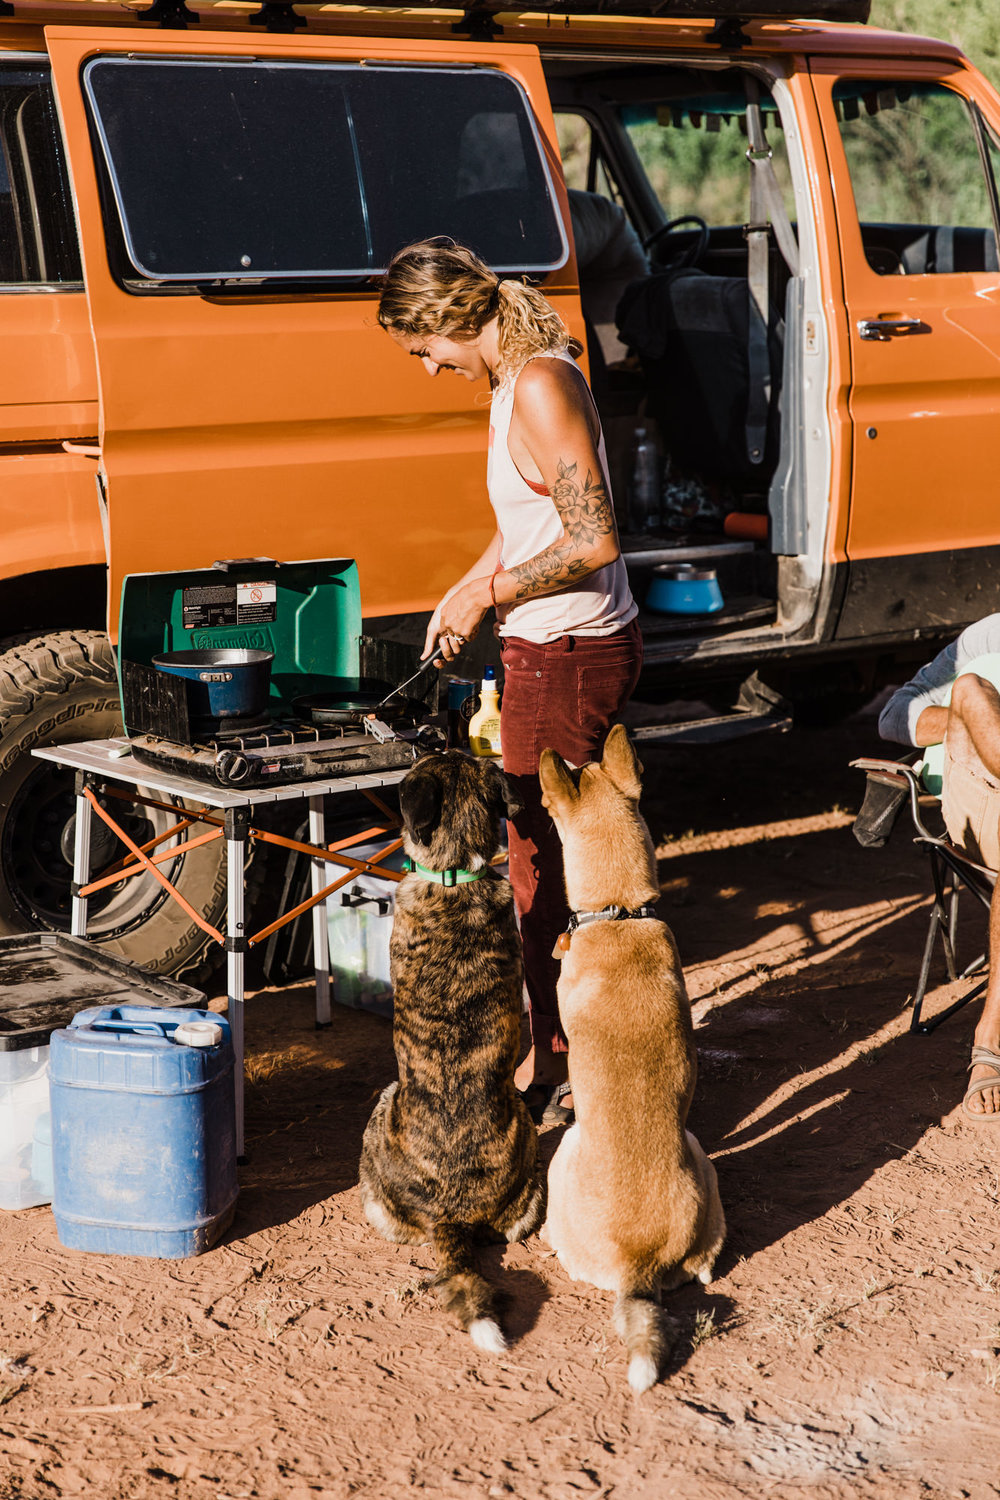 bri + keith madia | van life in the utah desert | never leave the dogs behind | the hearnes adventure photography for ruffwear | www.thehearnes.com